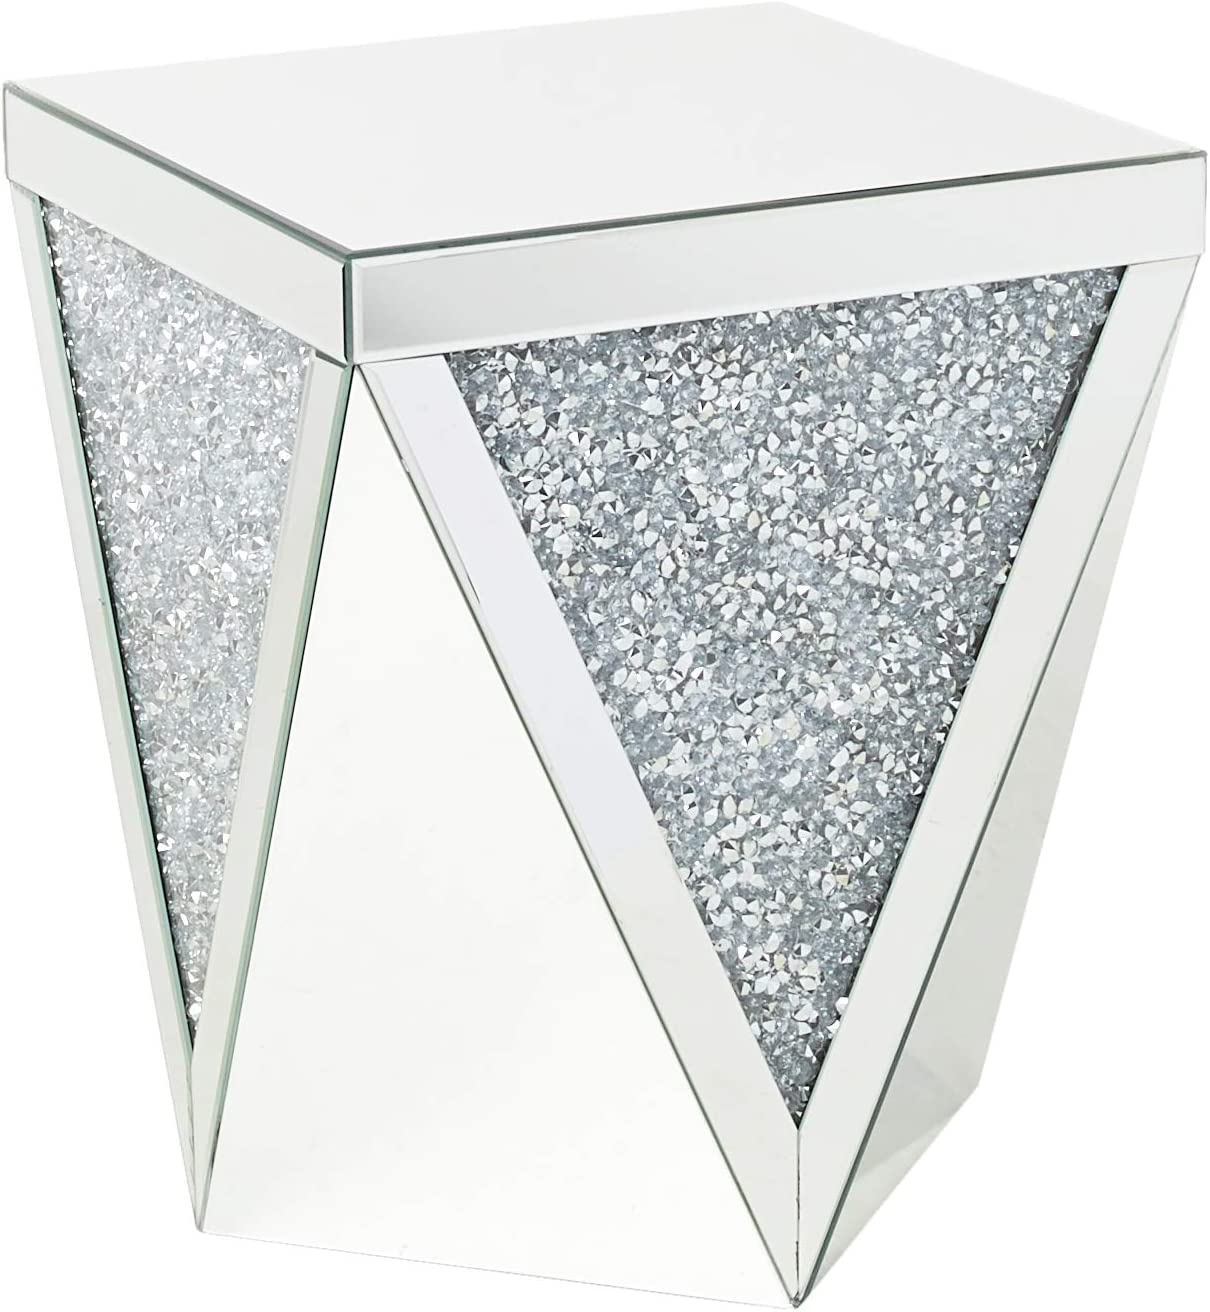 ACME Noralie End Table - 82772 - Mirrored